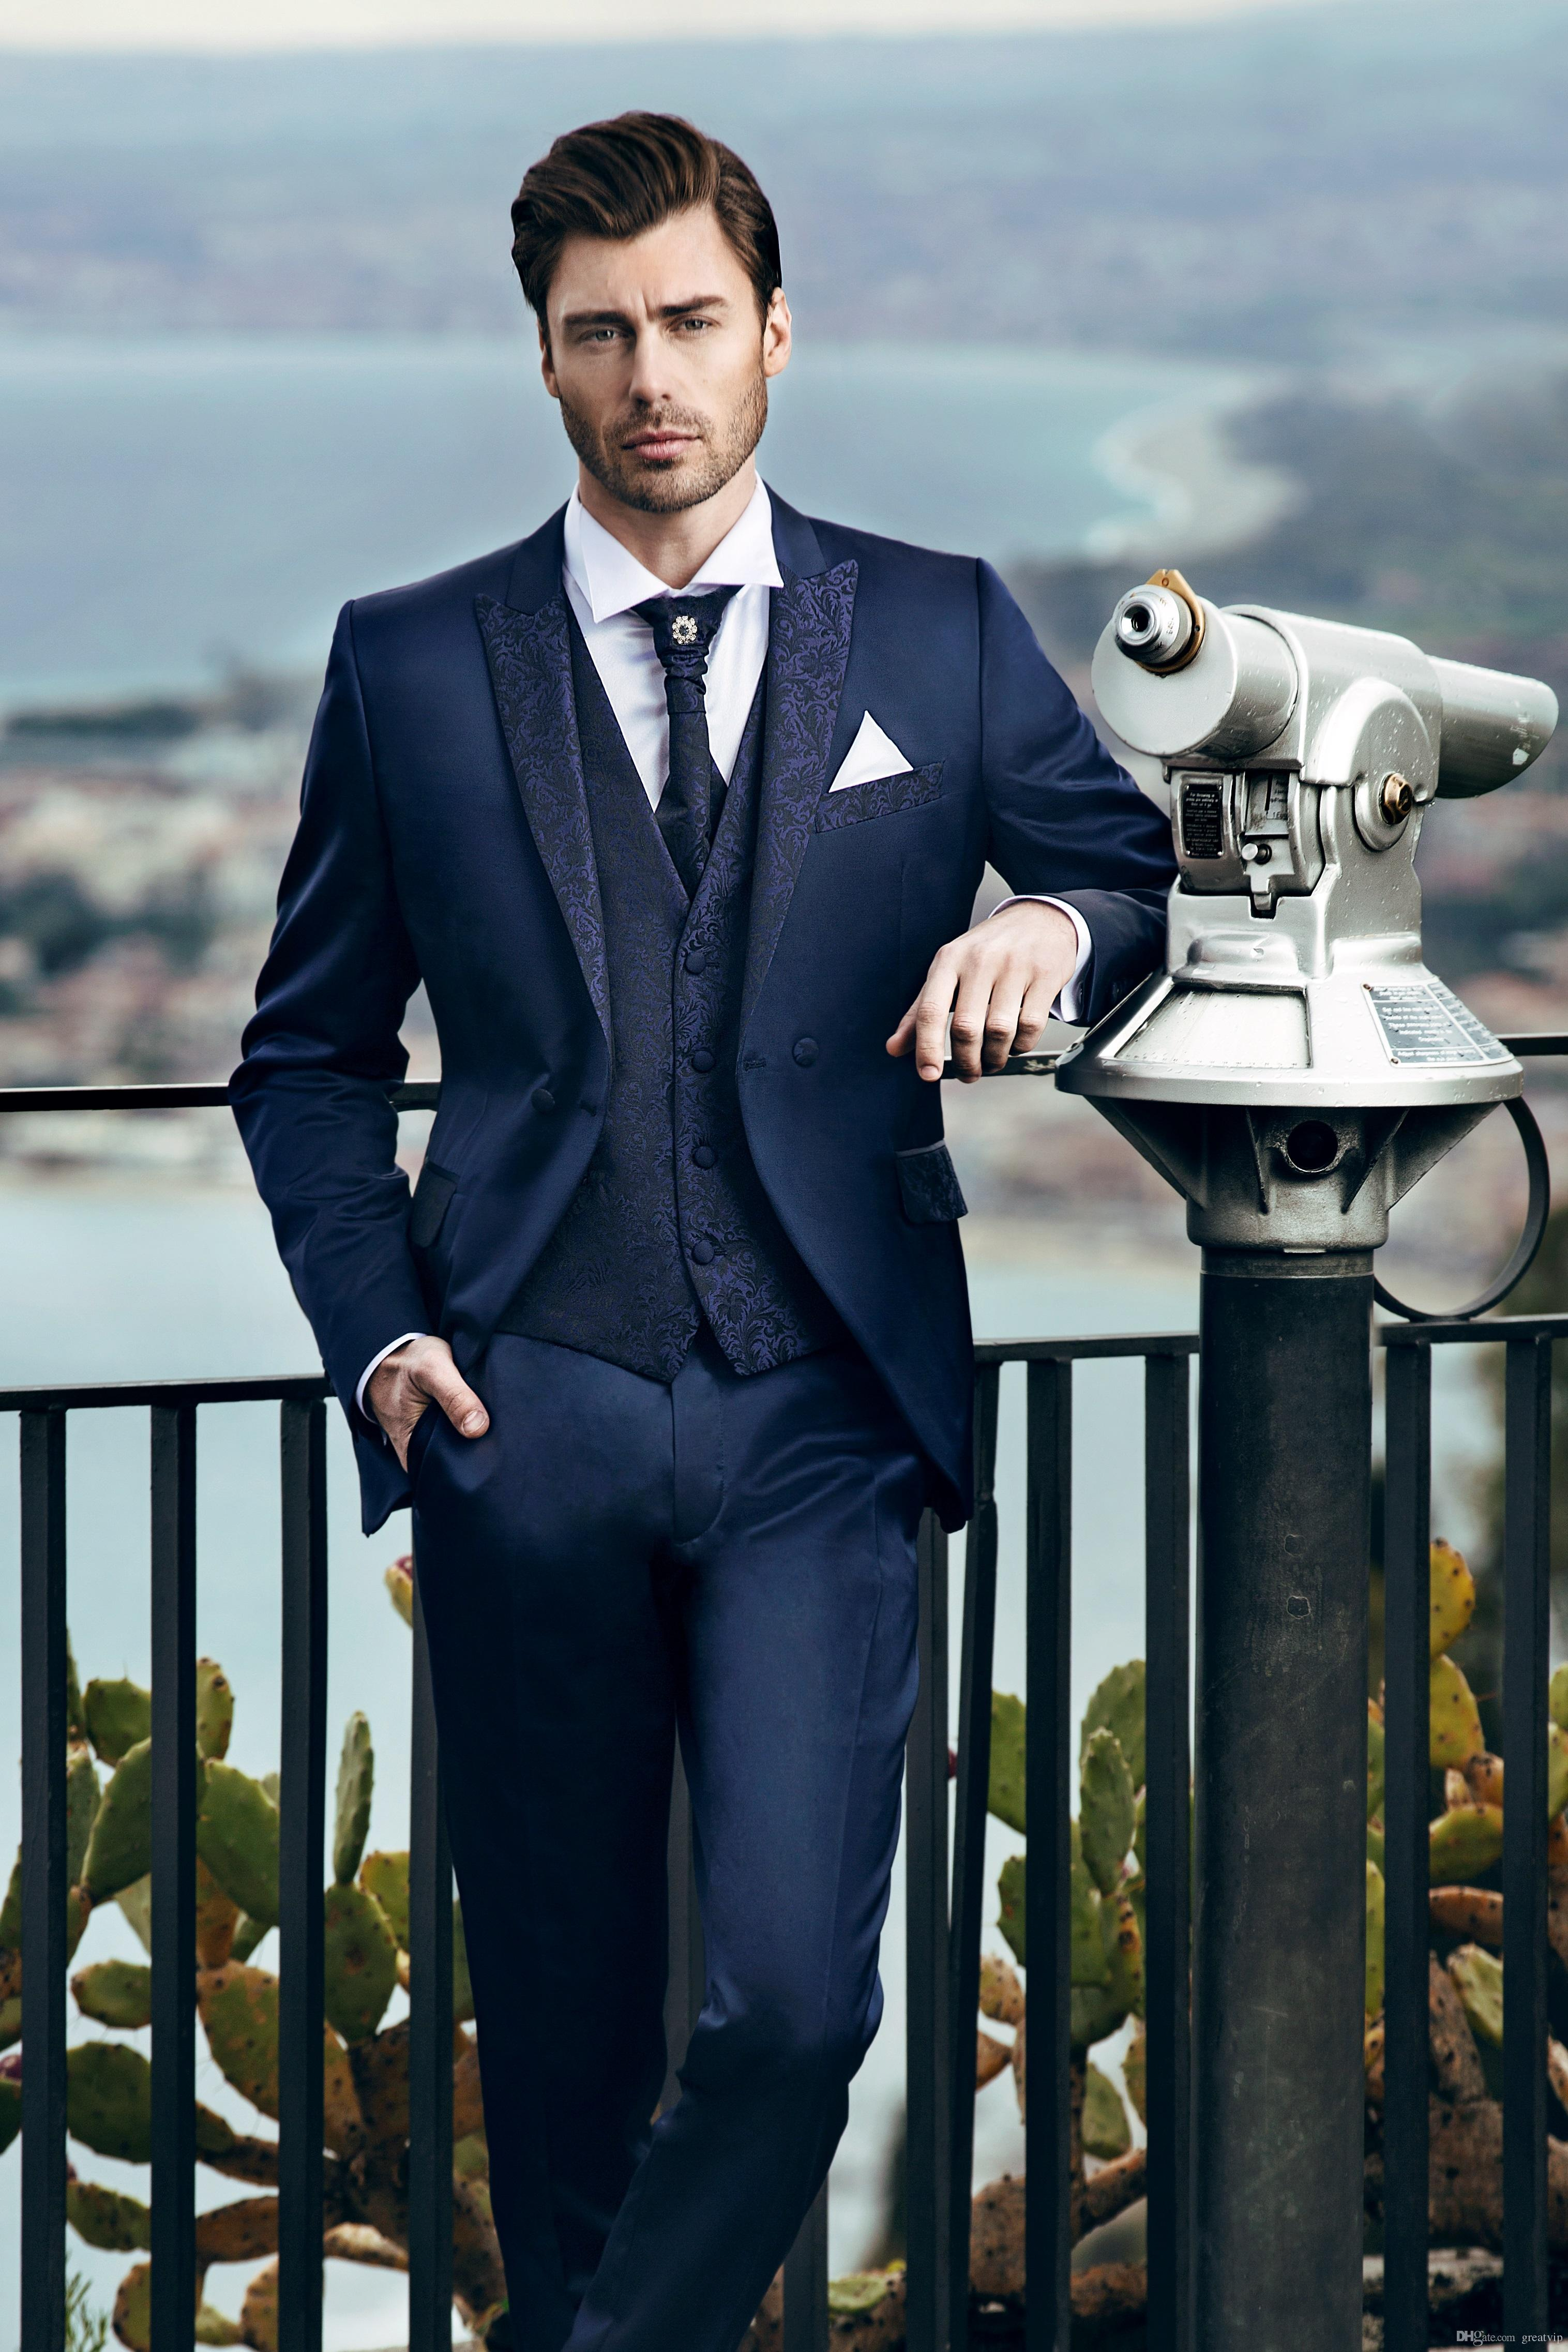 Mens Suits Business Formal Wedding Tuxedos Peaked Lapel Bridal Groom Jackets Printed Wedding Suits (Jackets+Pant+Vest)